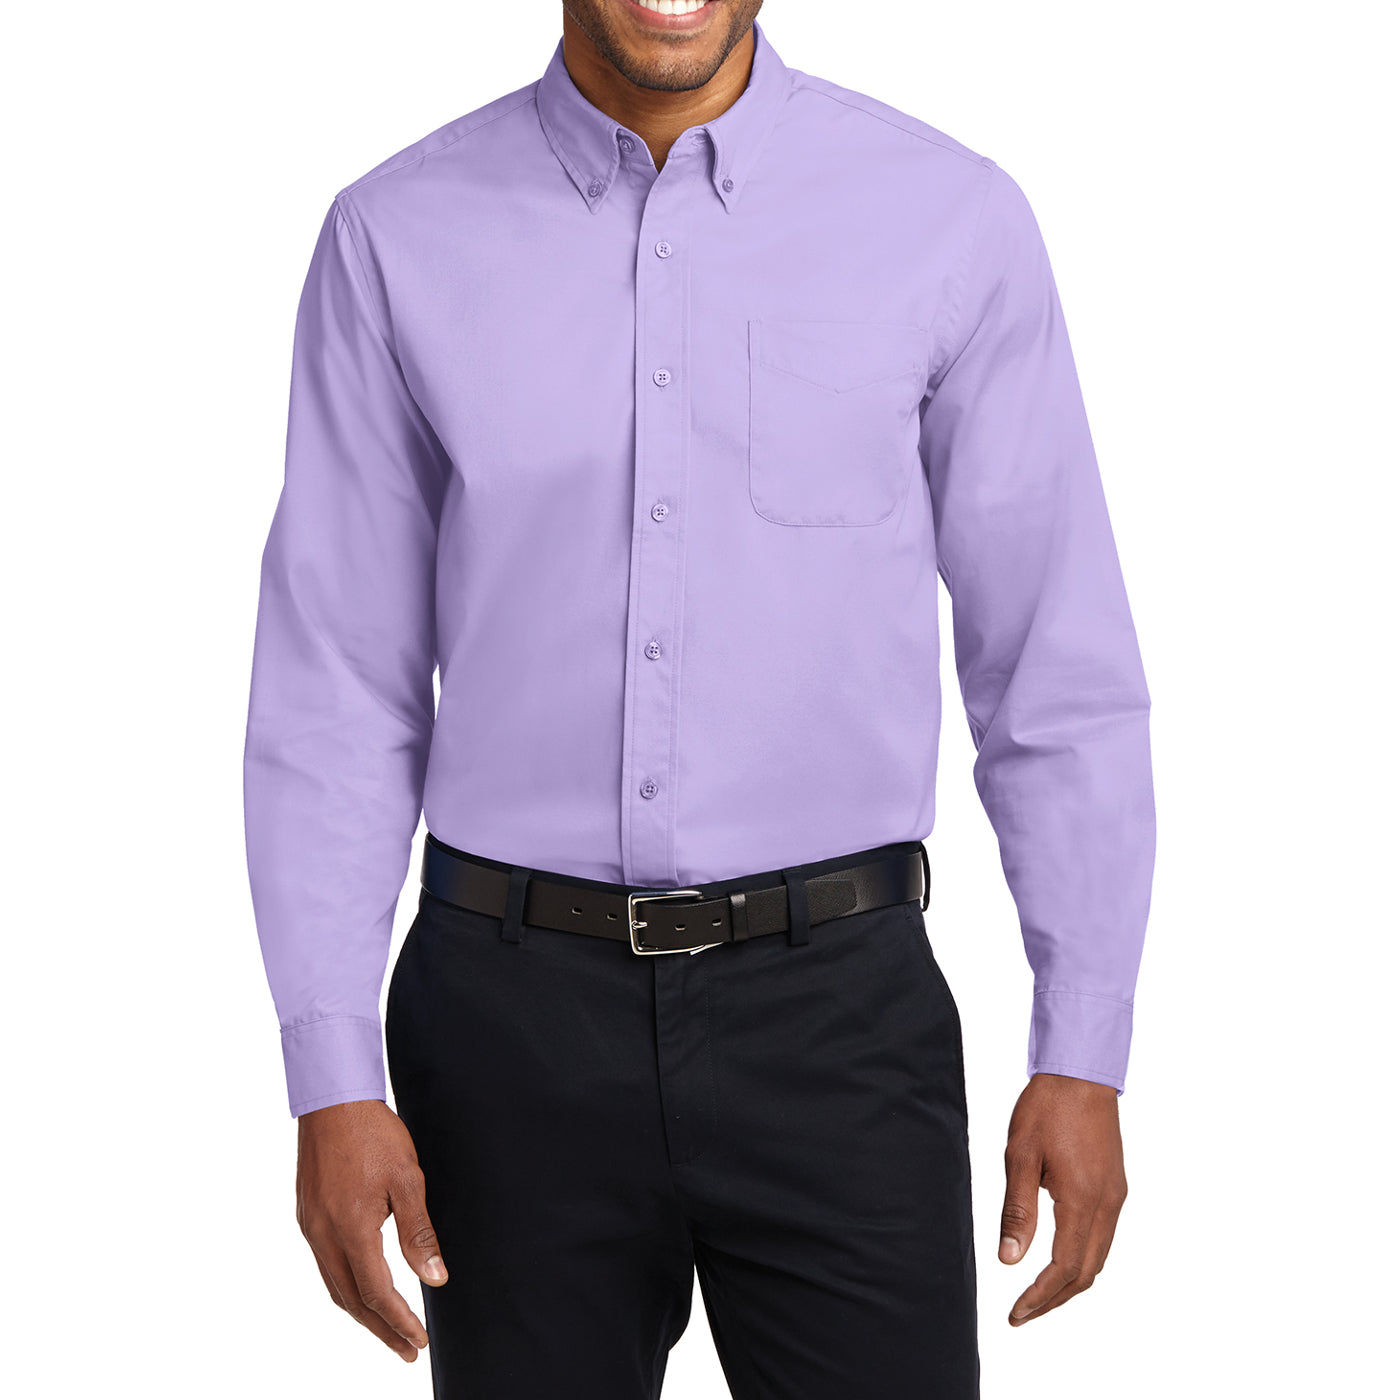 Men's Long Sleeve Easy Care Shirt - Bright Lavender - Front